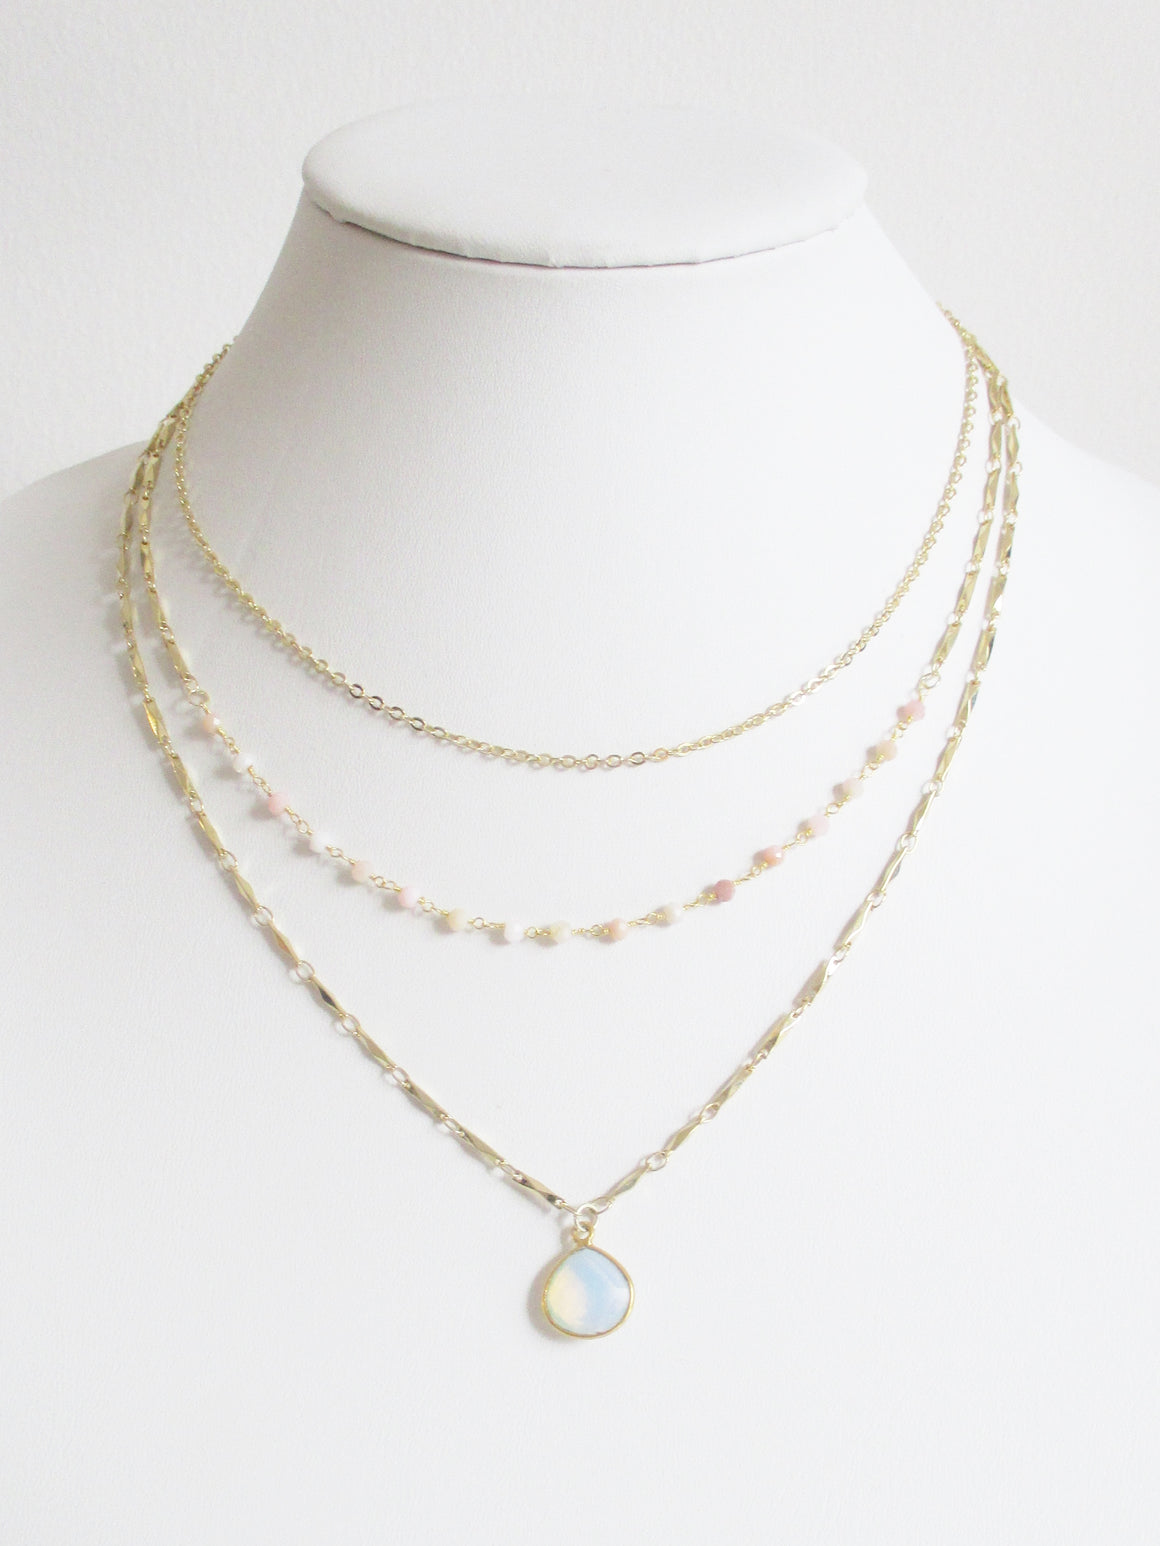 METALLIC OCEAN THREE TIER PINK OPAL AND WHITE OPAL GEMSTONE NECKLACE (A SOLD OUT)